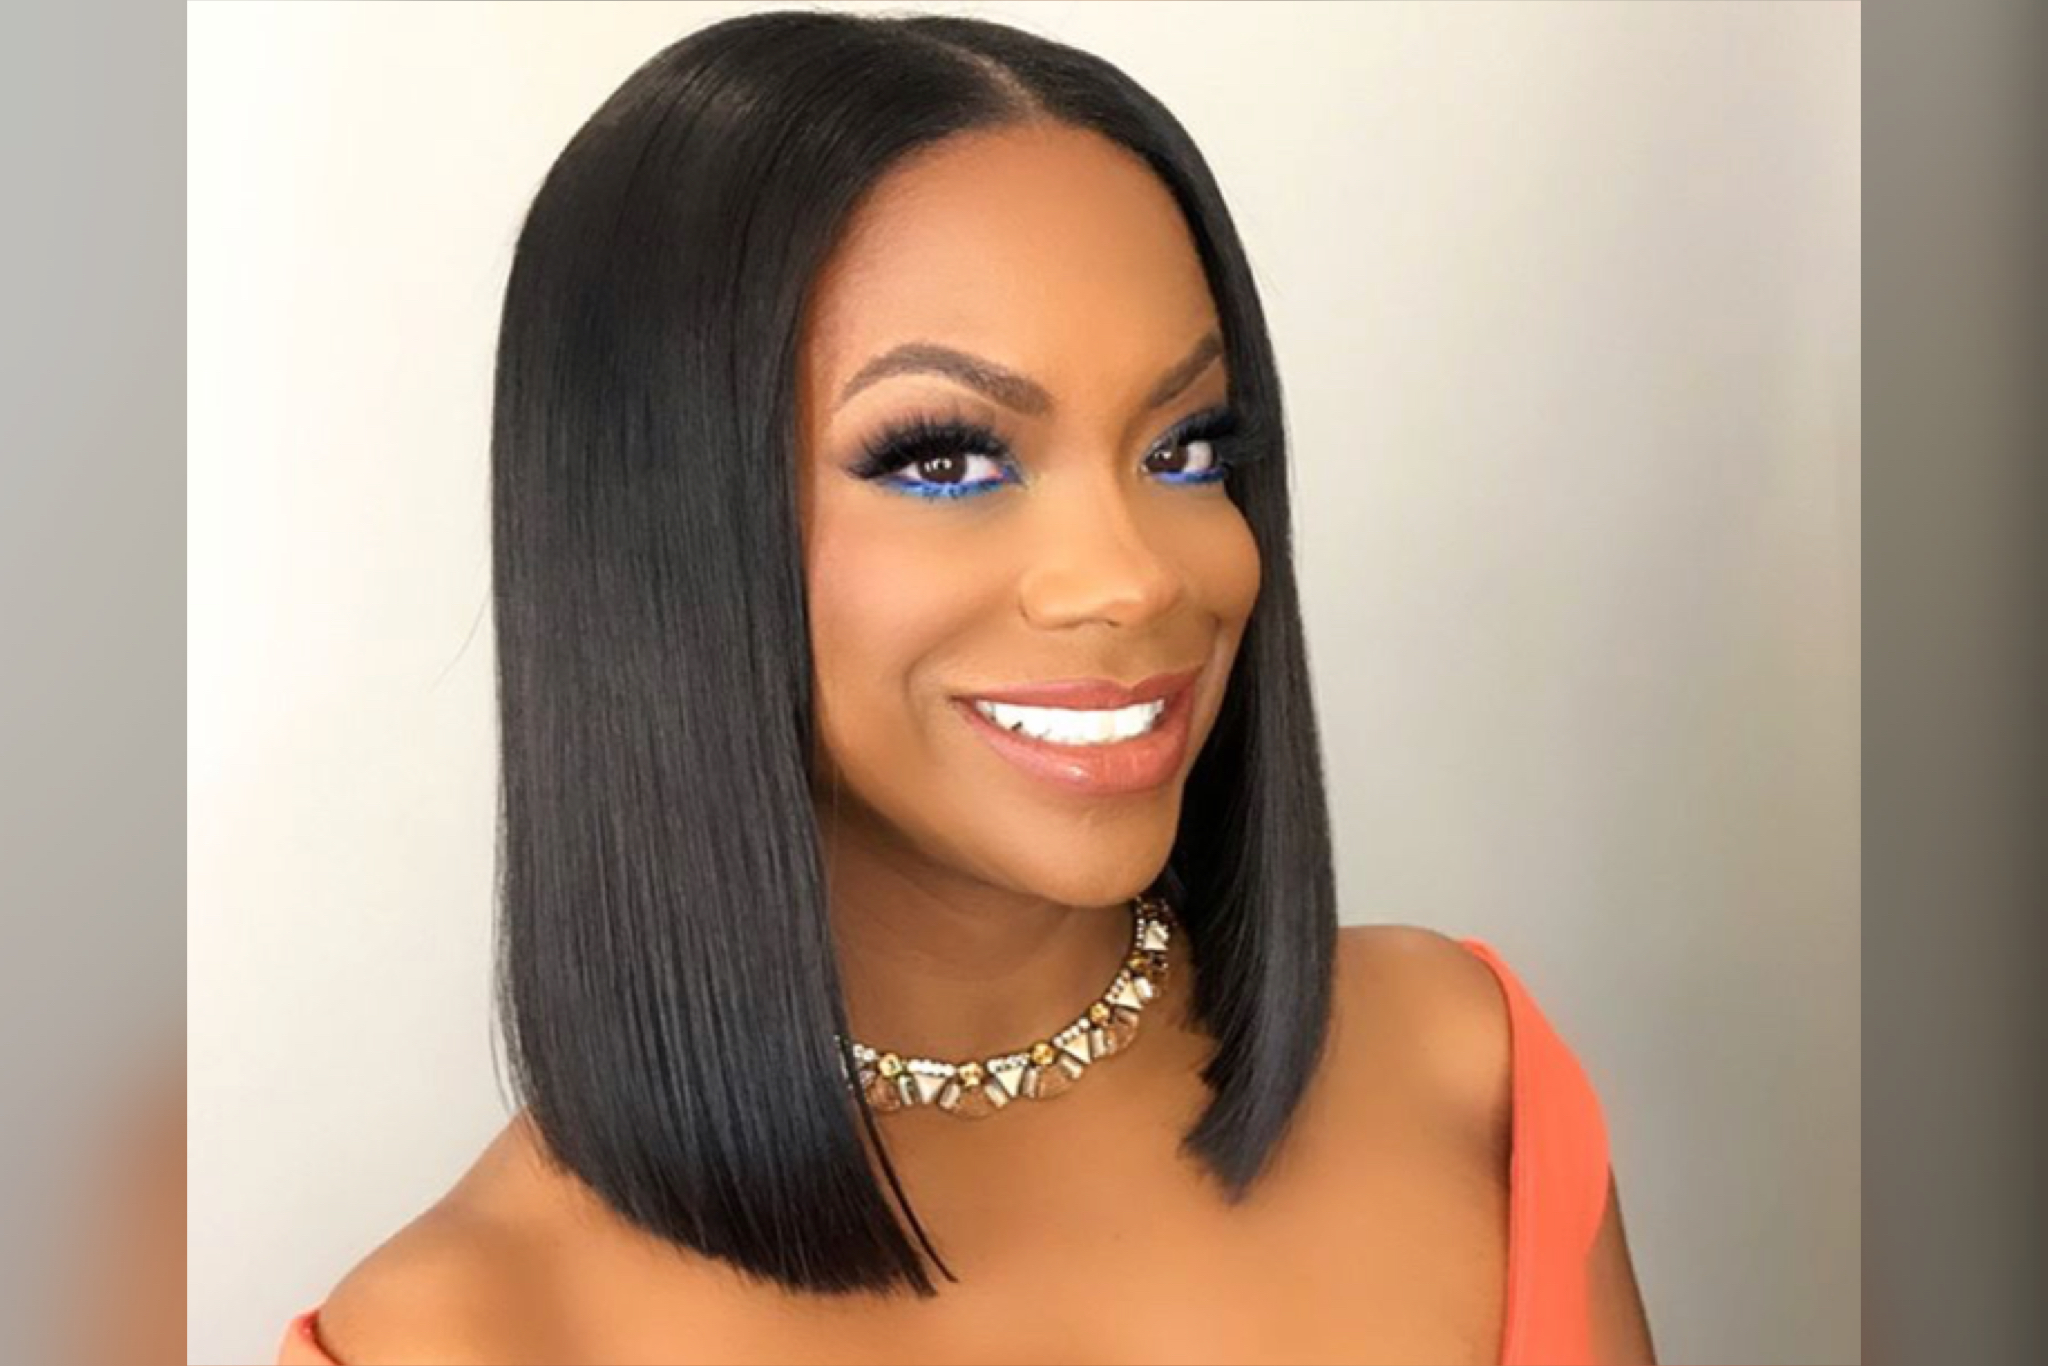 Kandi Burruss addresses the shooting at one of her Atlanta restaurants that left three injured on Valentine's Day.